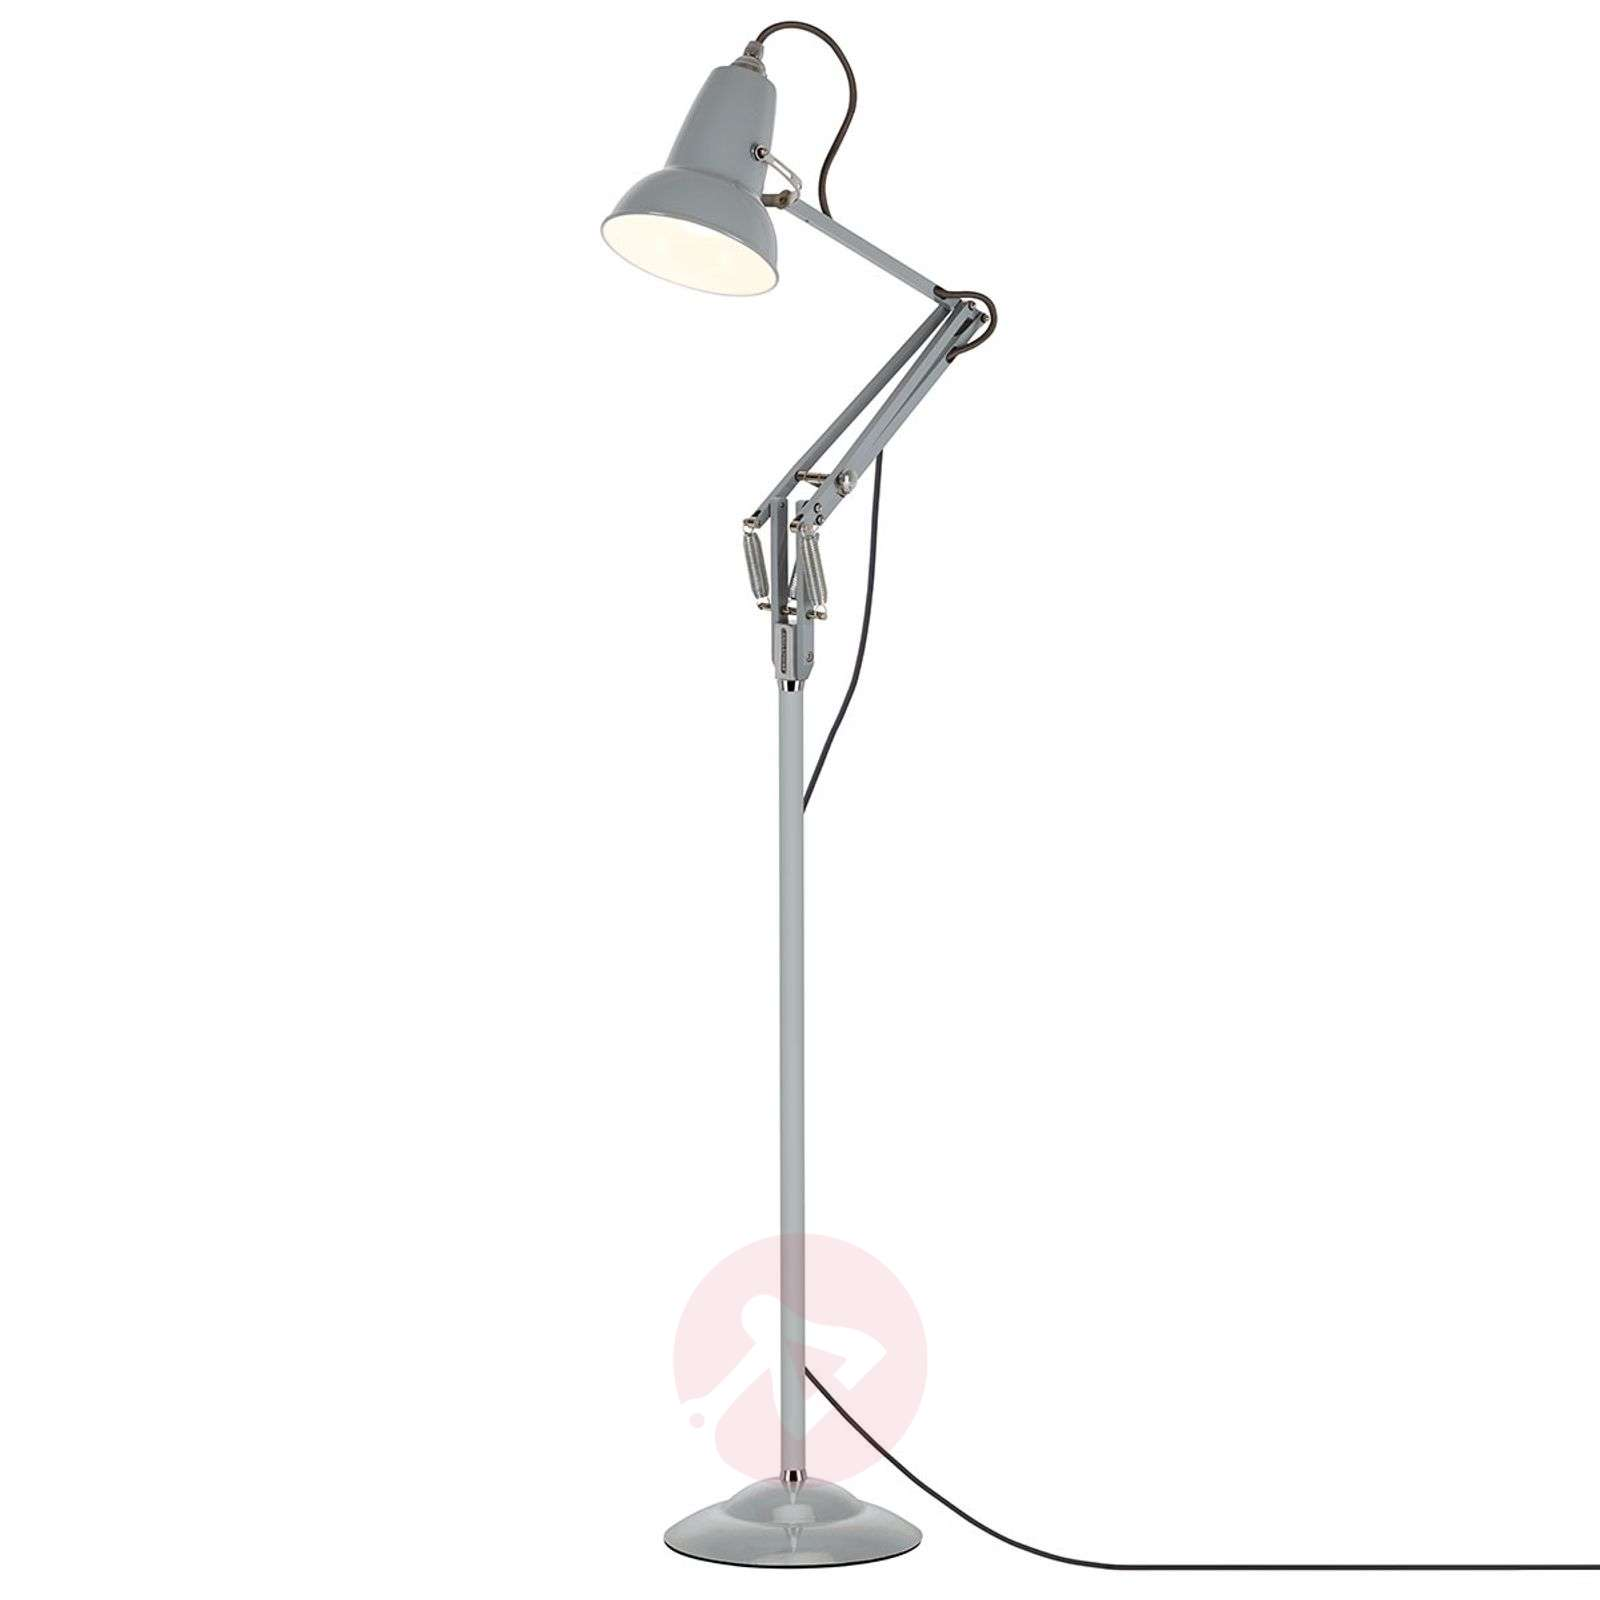 Anglepoise® Original 1227 Mini floor lamp-1073067X-01